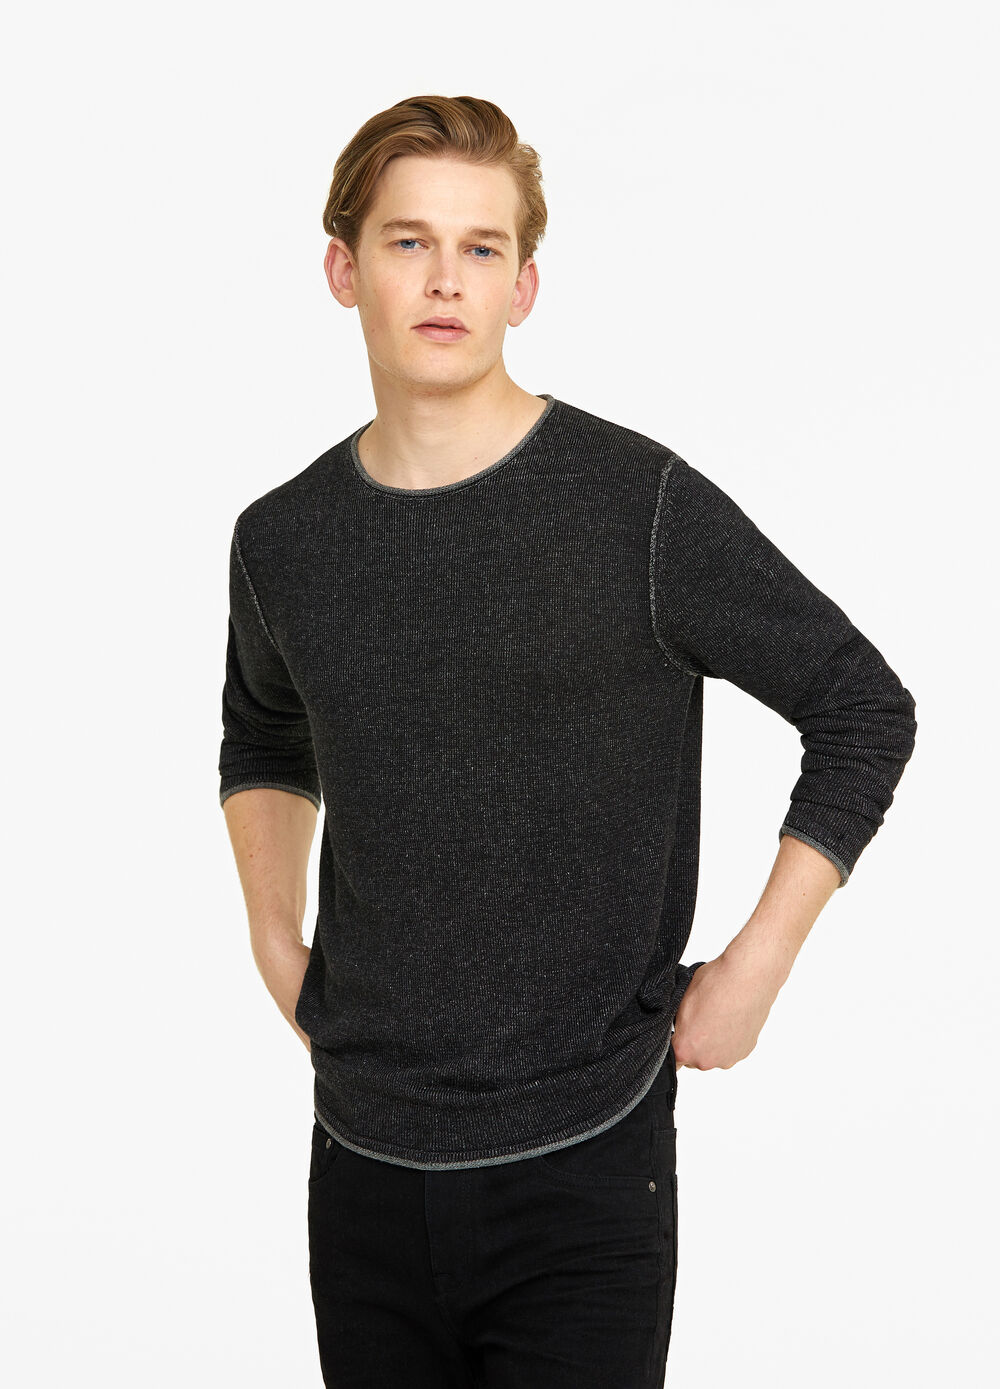 Knitted pullover with roll-up edges